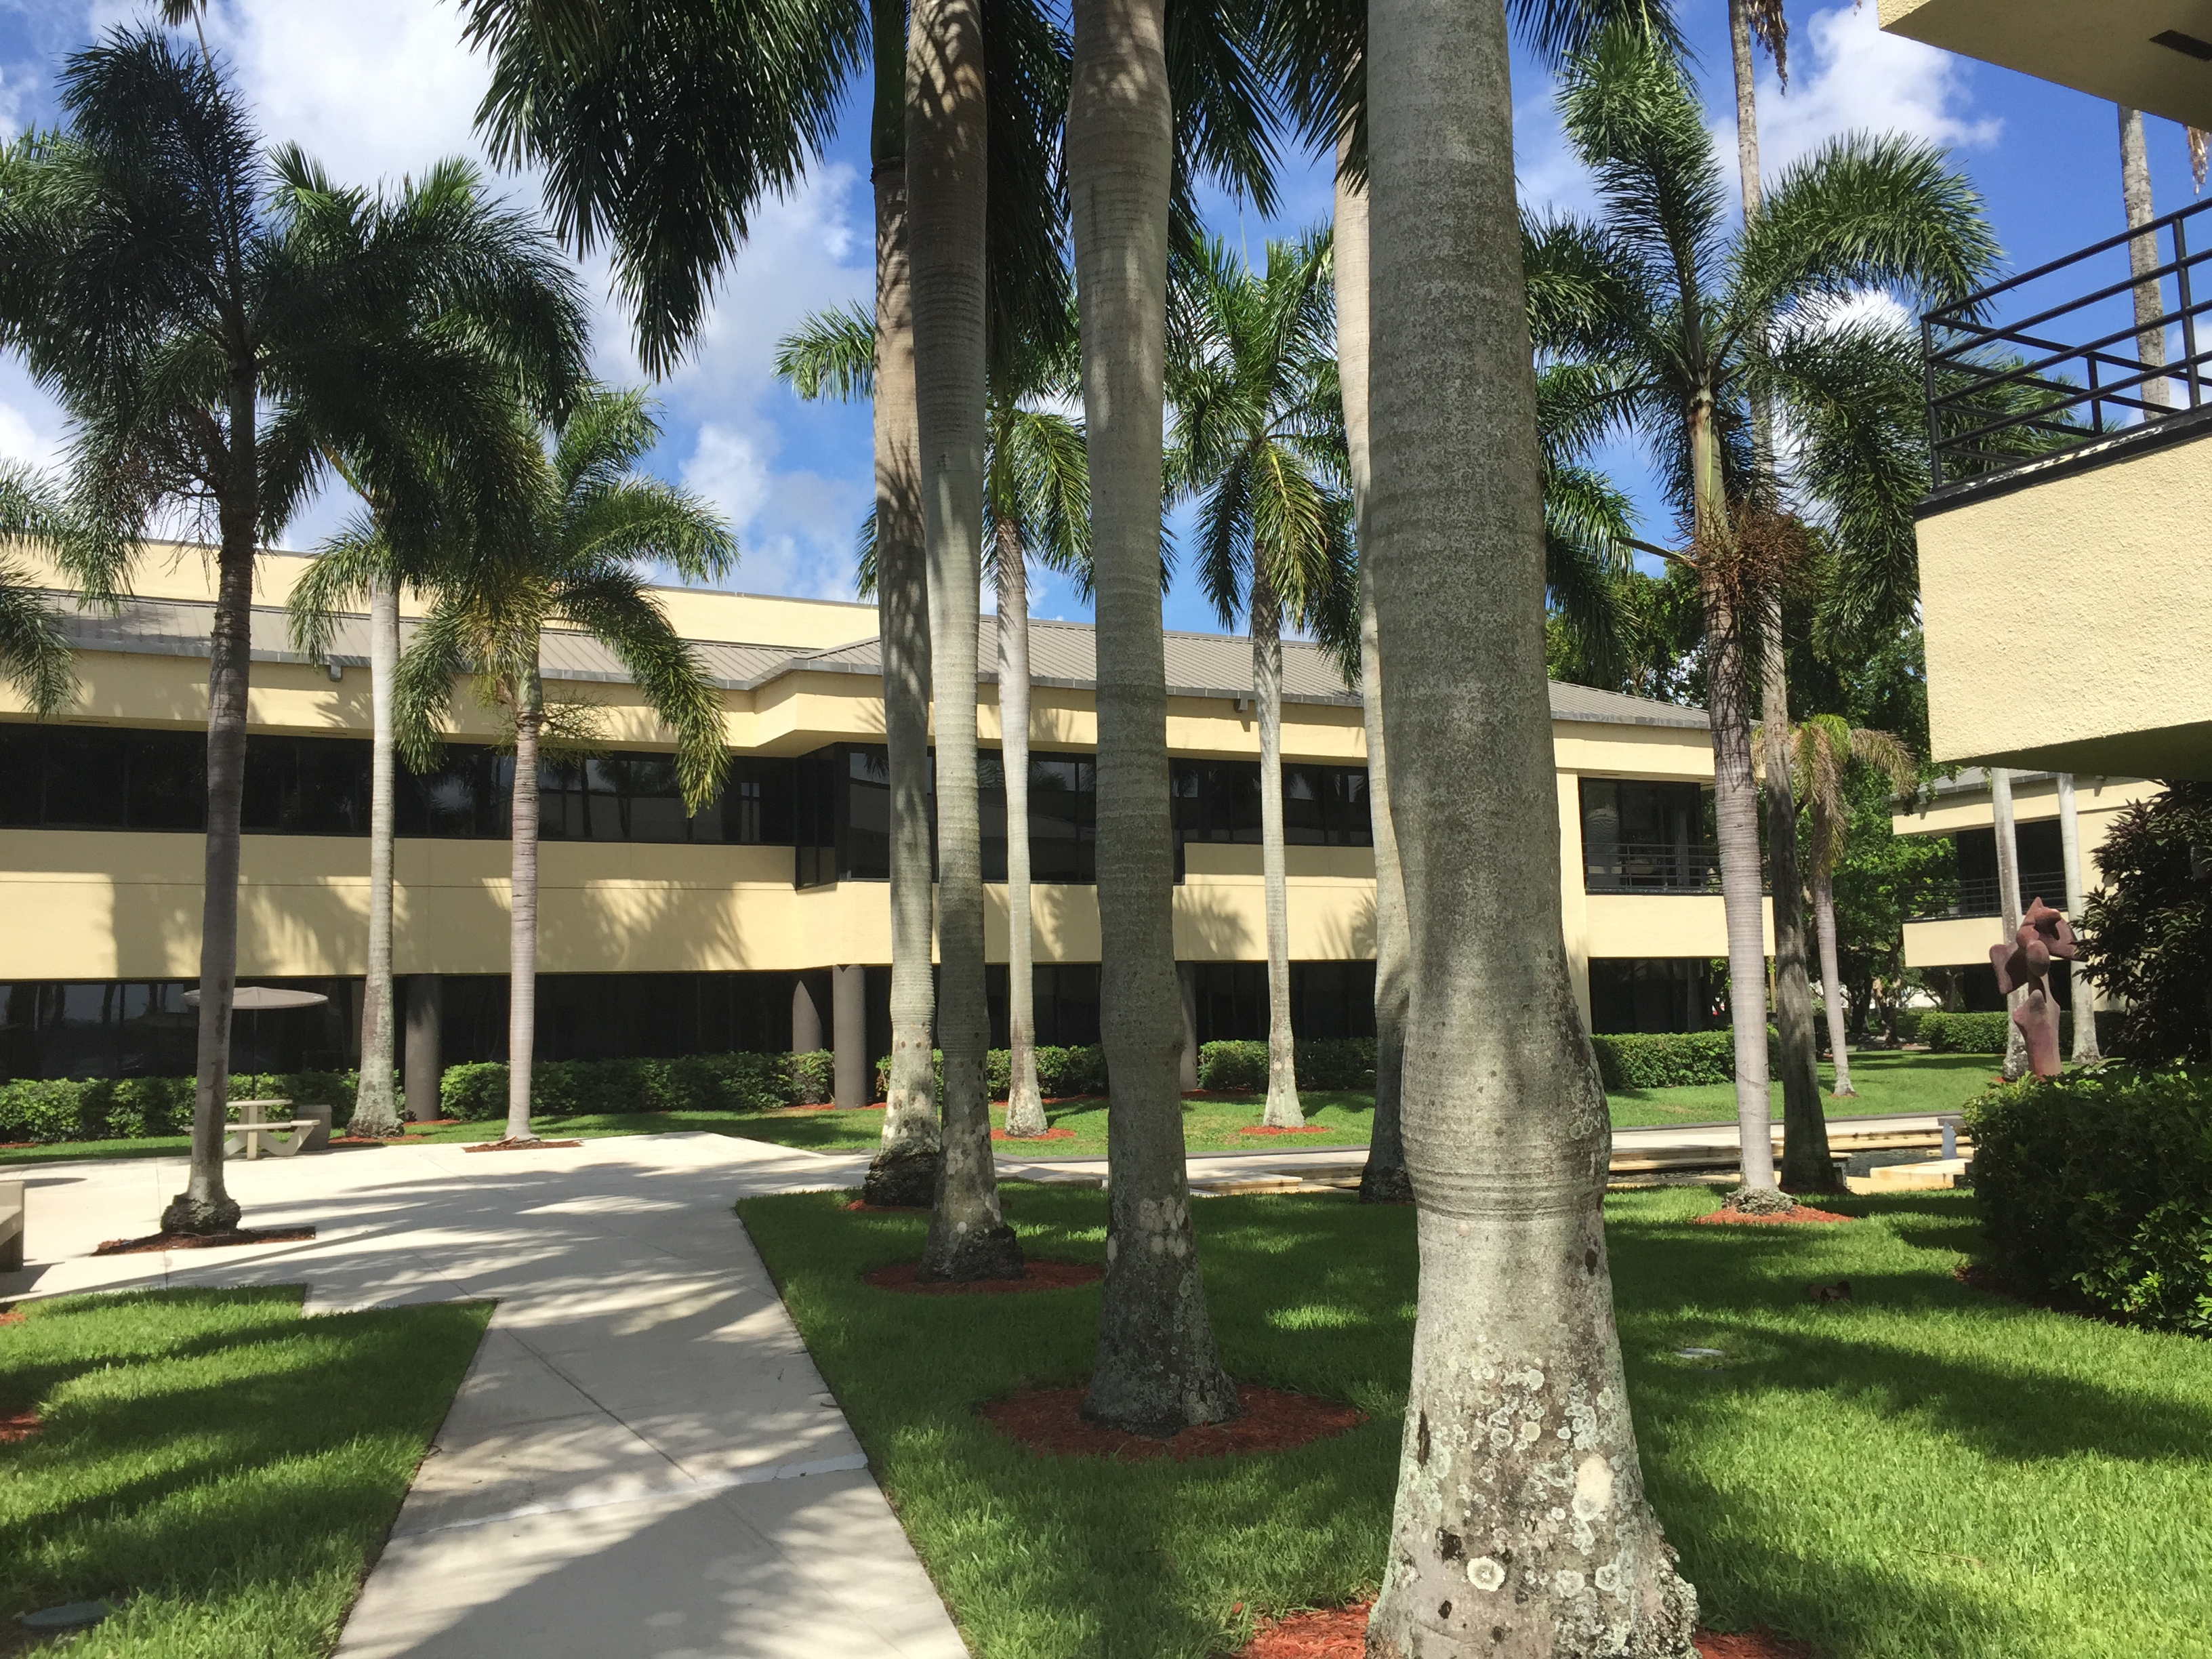 Sperry Van Ness Commercial Realty Sells Professional Office Building In Fort Lauderdale For $7,300,000